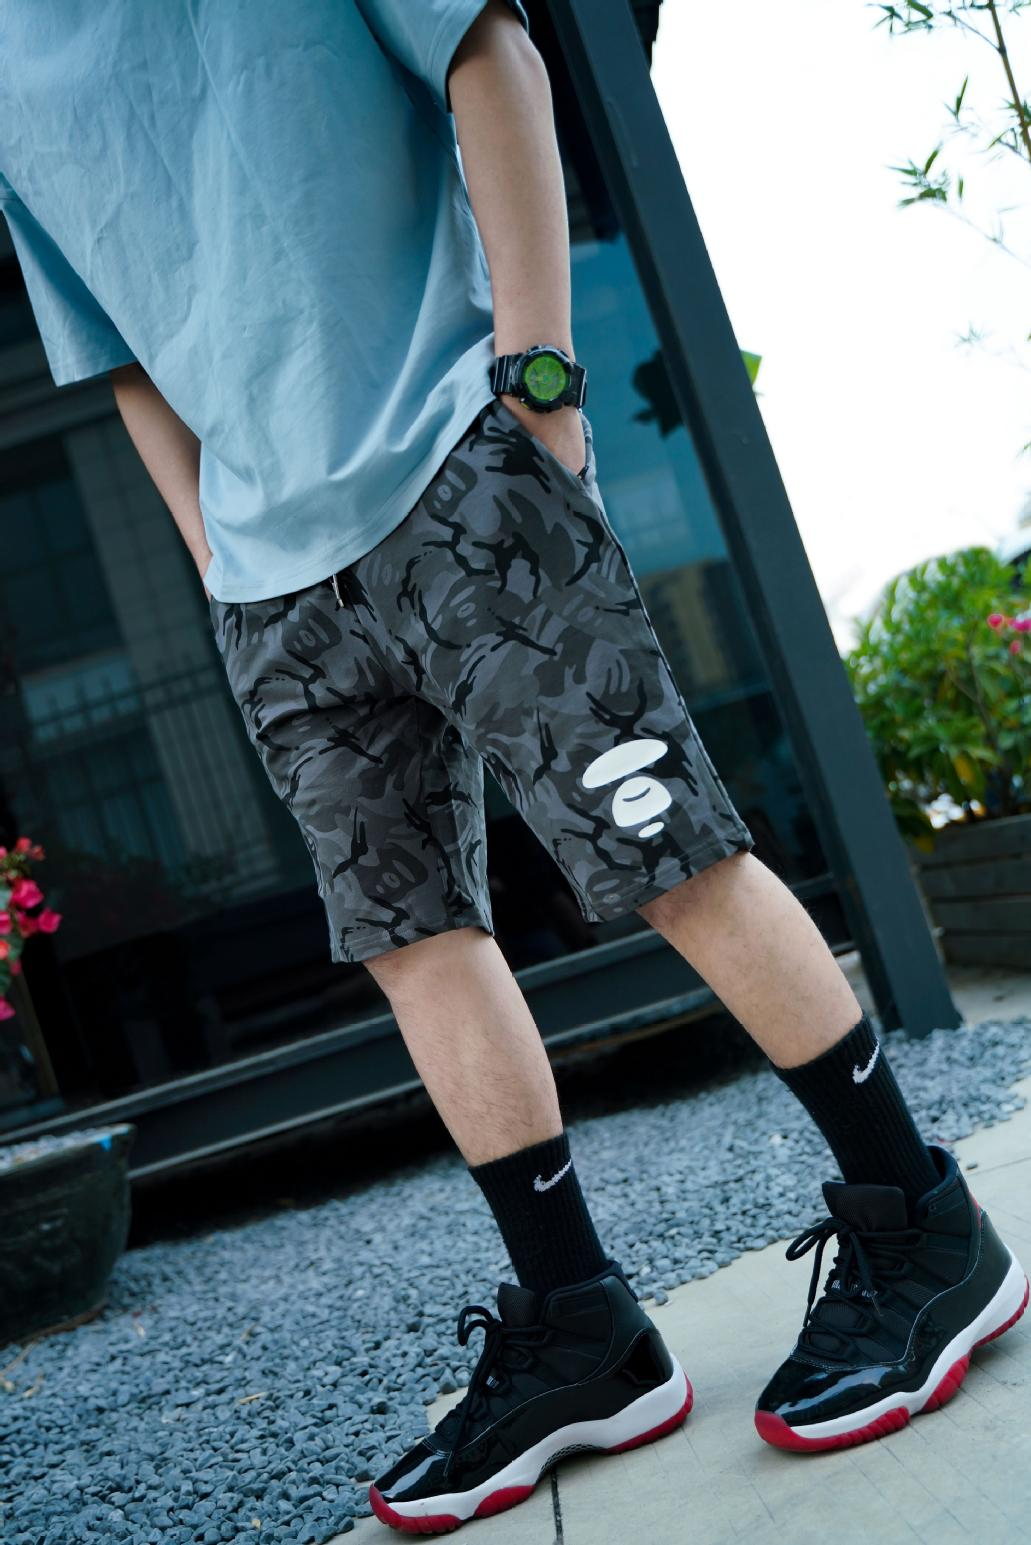 Lpby original summer camouflage mens shorts ape head trend pure cotton letter leisure